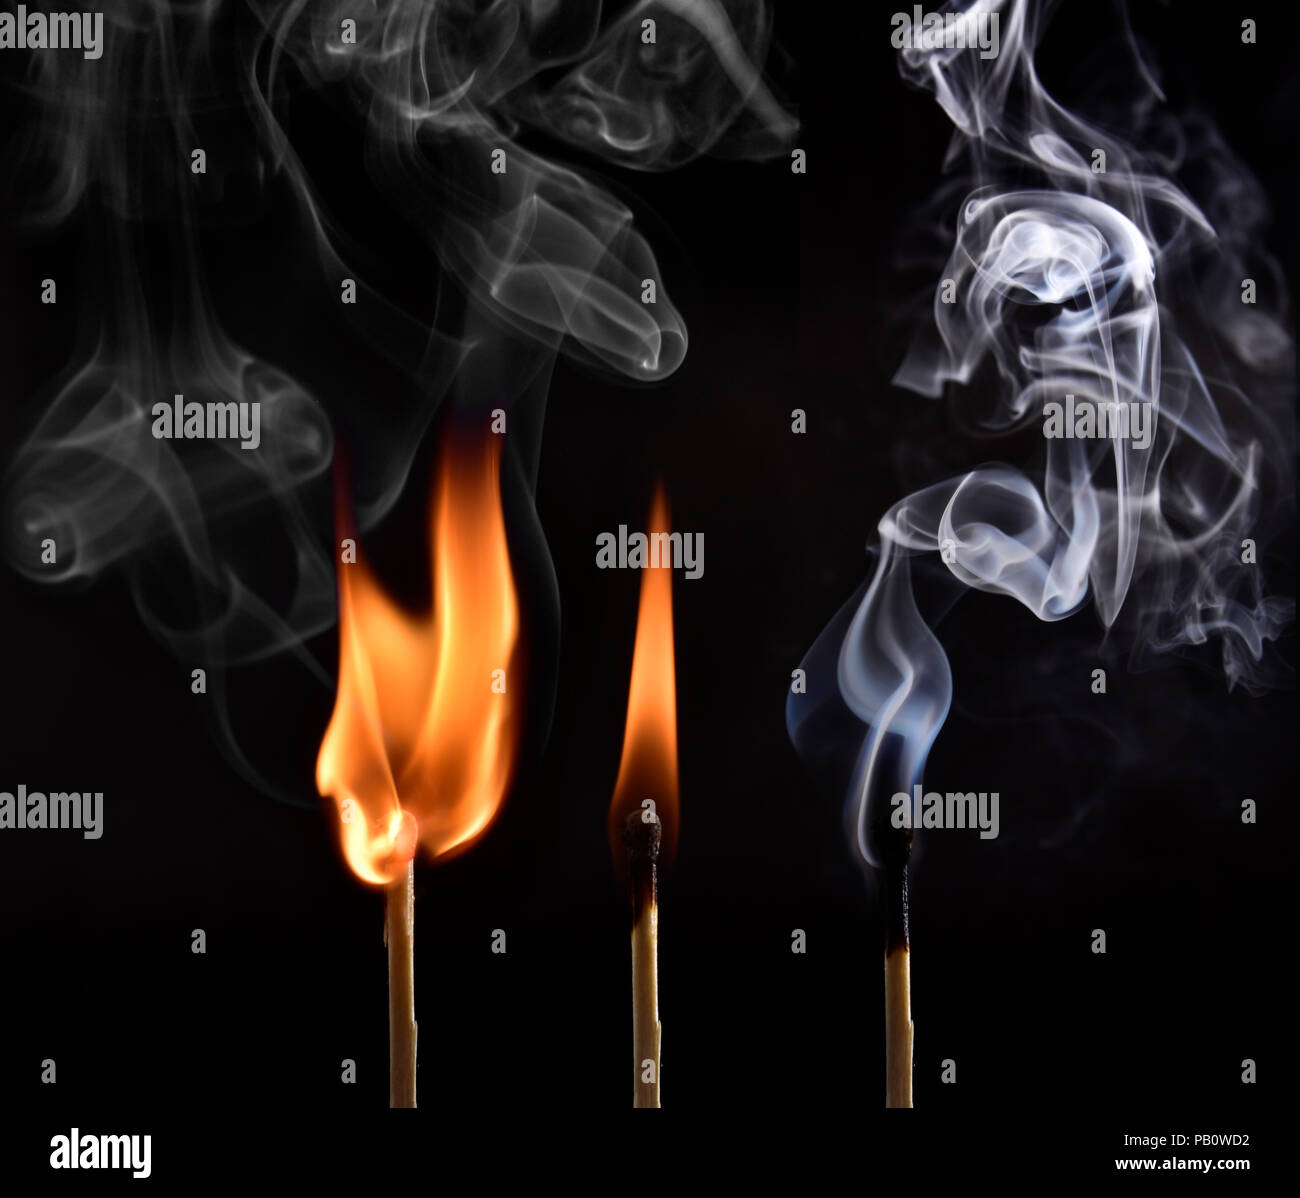 Sequence of ignition of a matchstick from lighting to being blown up and capturing the beautiful drawings made by the smoke. Done on black background - Stock Image